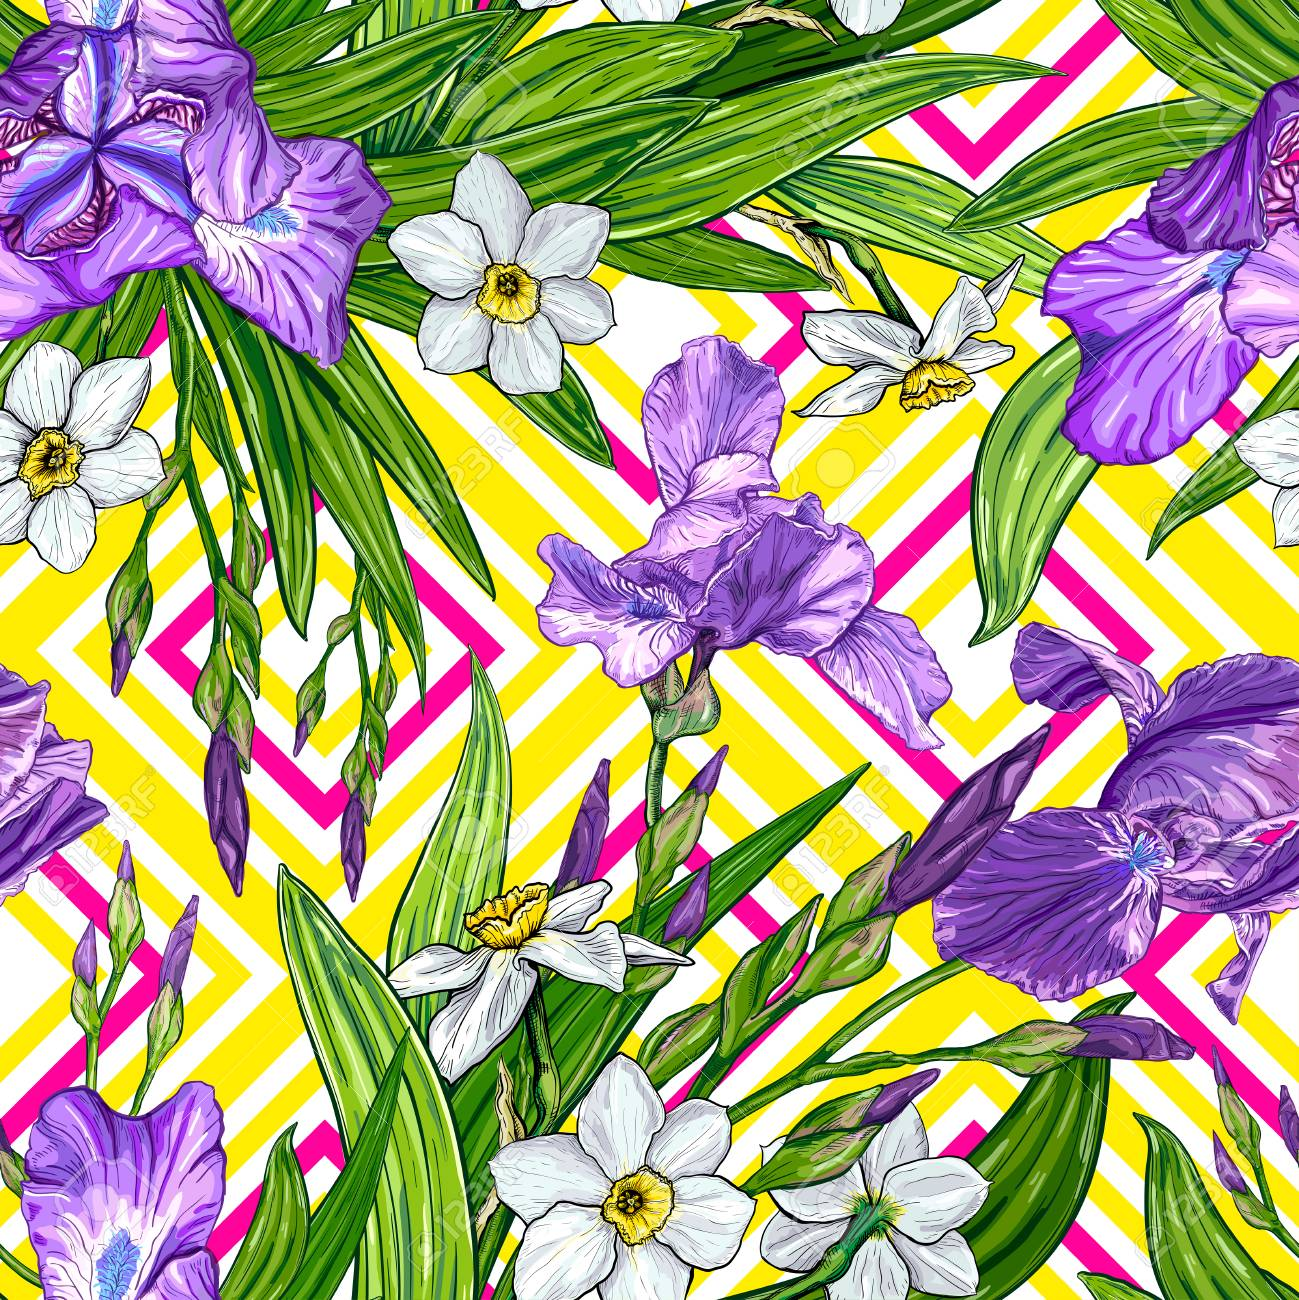 Seamless Pattern With Iris And Narcissus Flowers On A Geometric